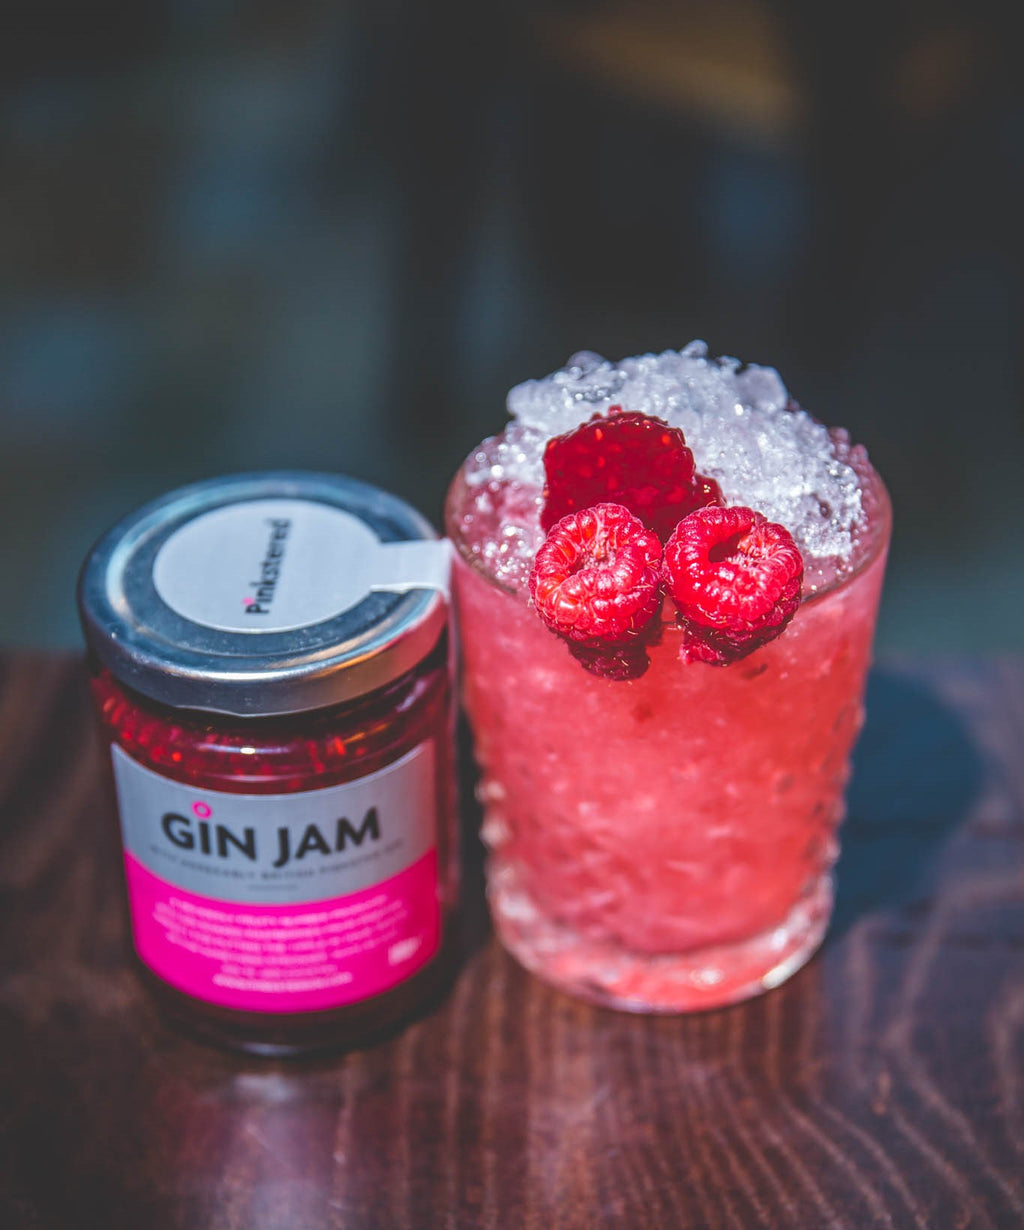 Pinkster Gin 'n' Jam Cocktail